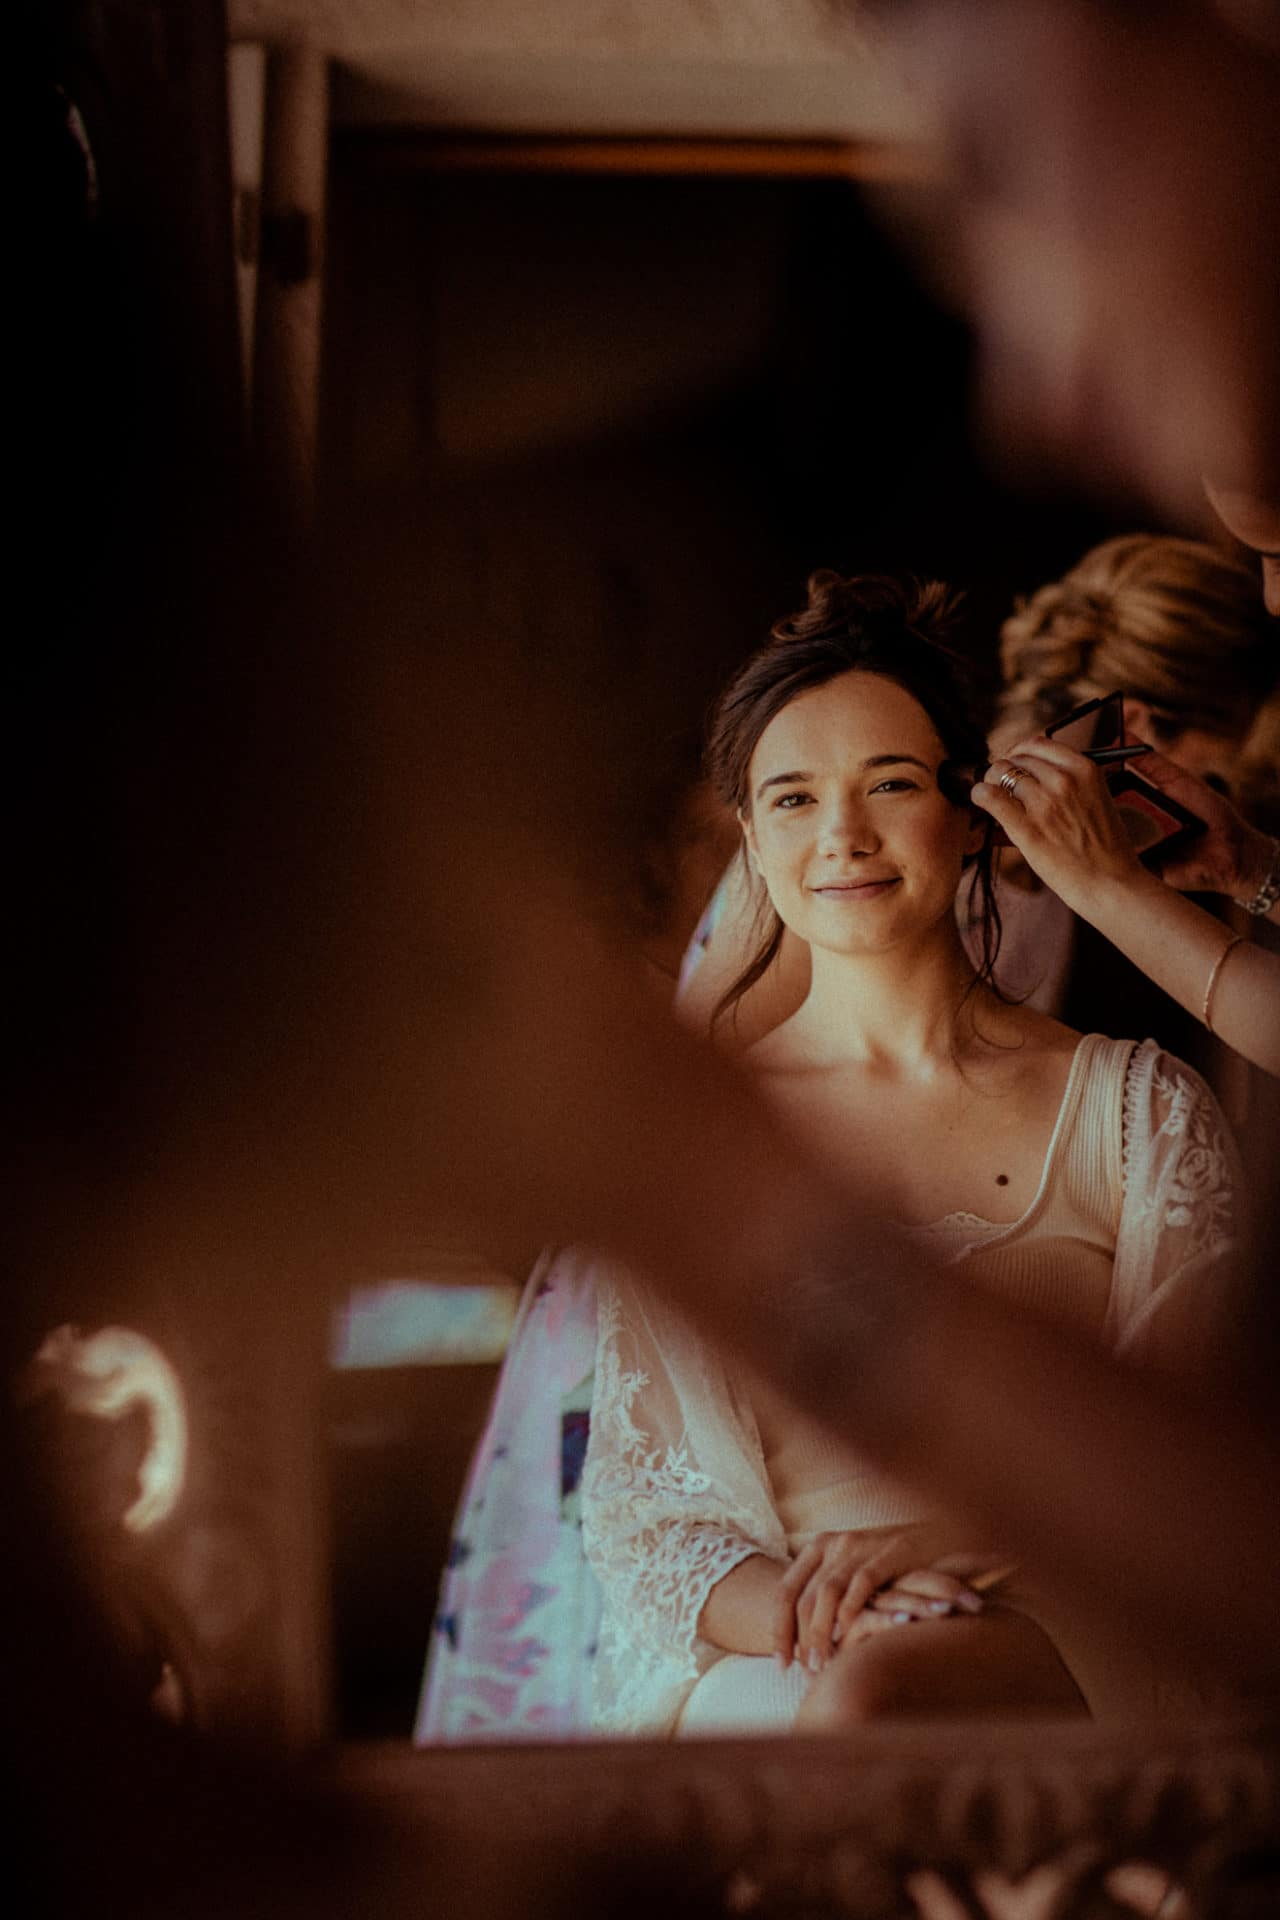 the bride smiling while preparation